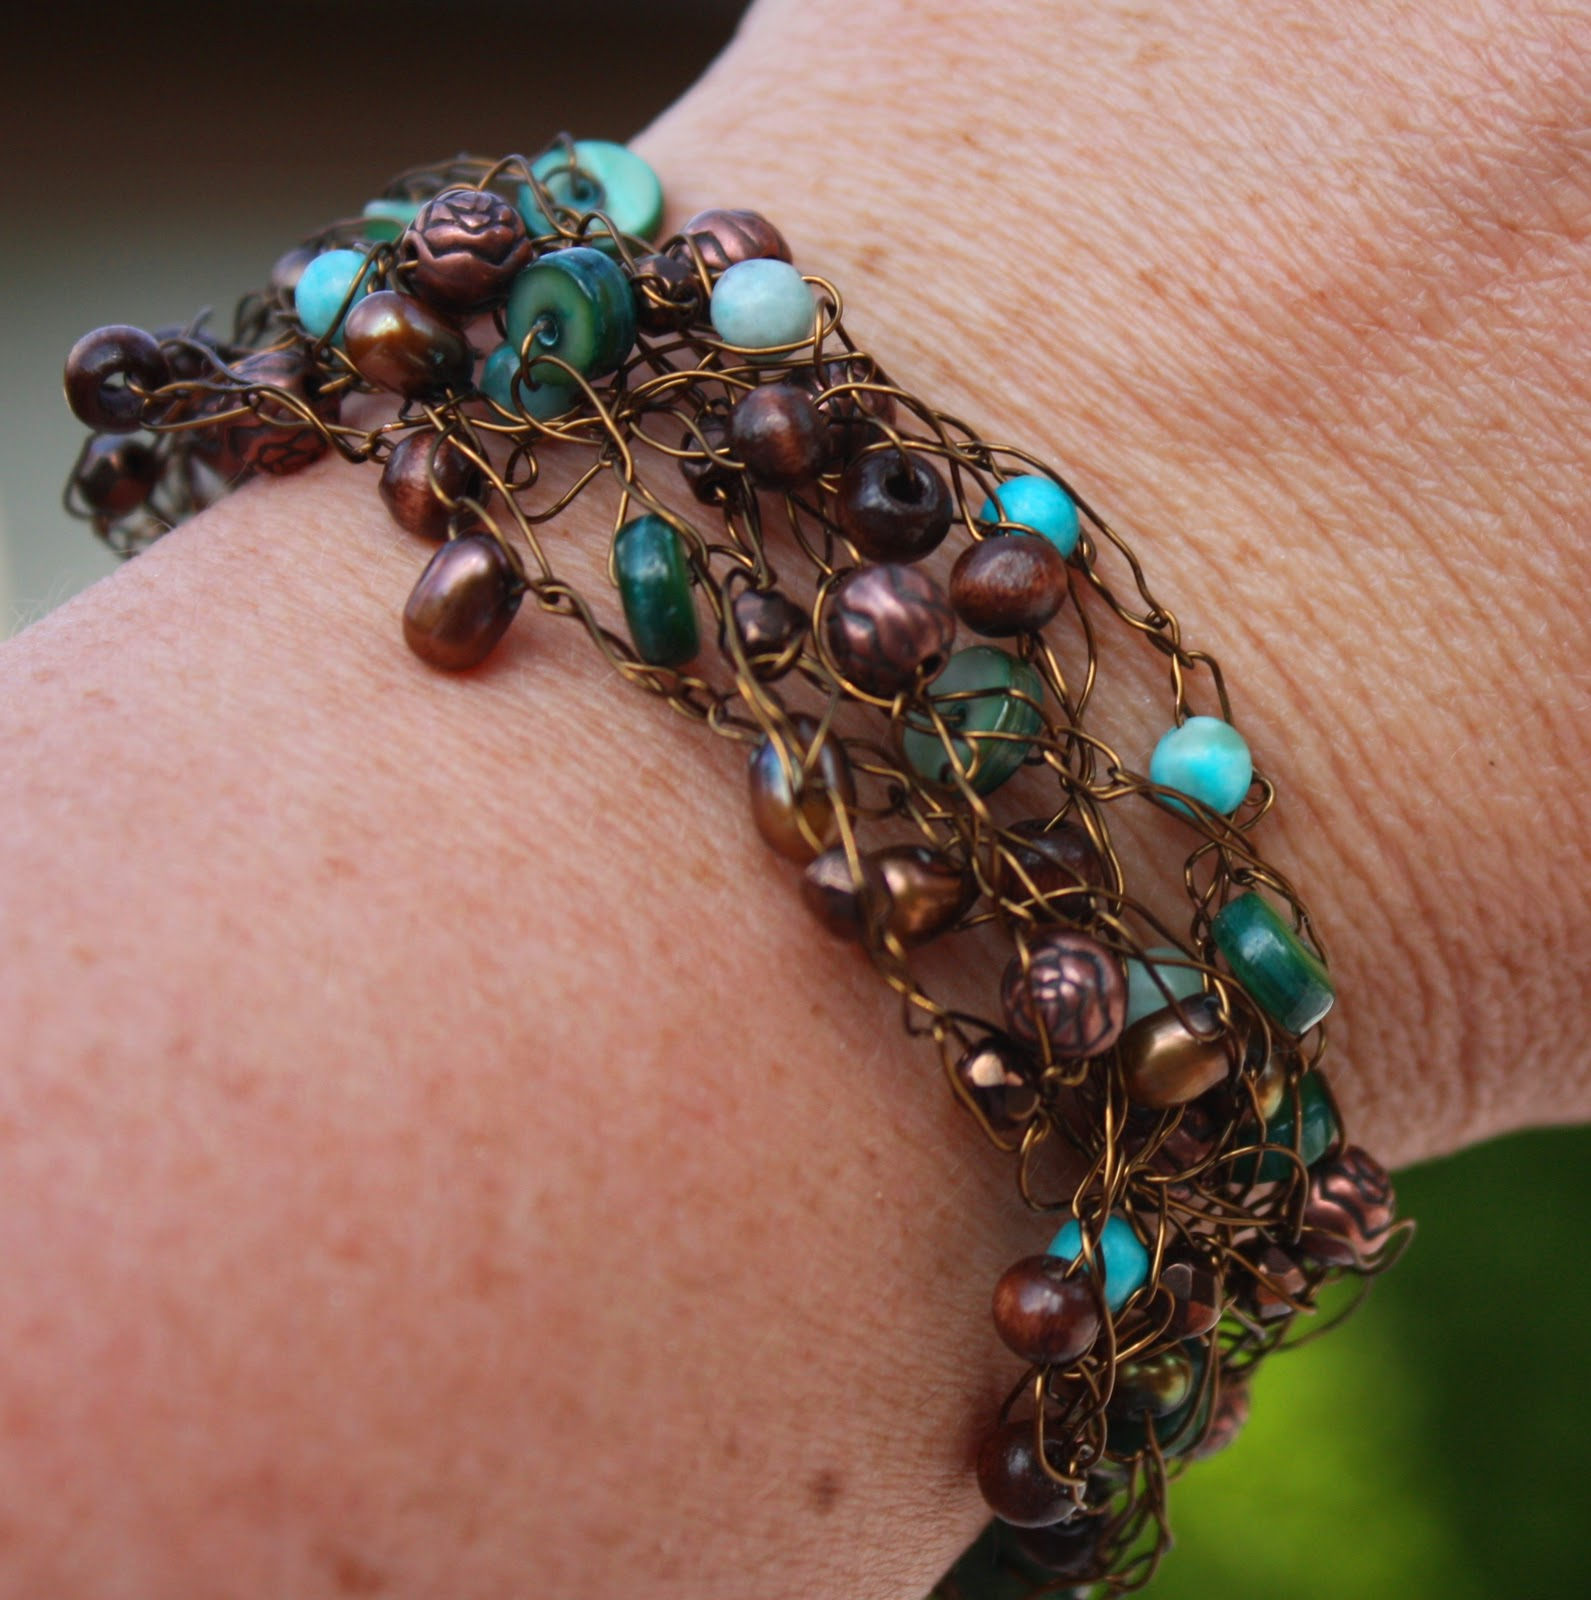 Wire Bracelets With Charms: Christy: Crocheted Wire Bracelet